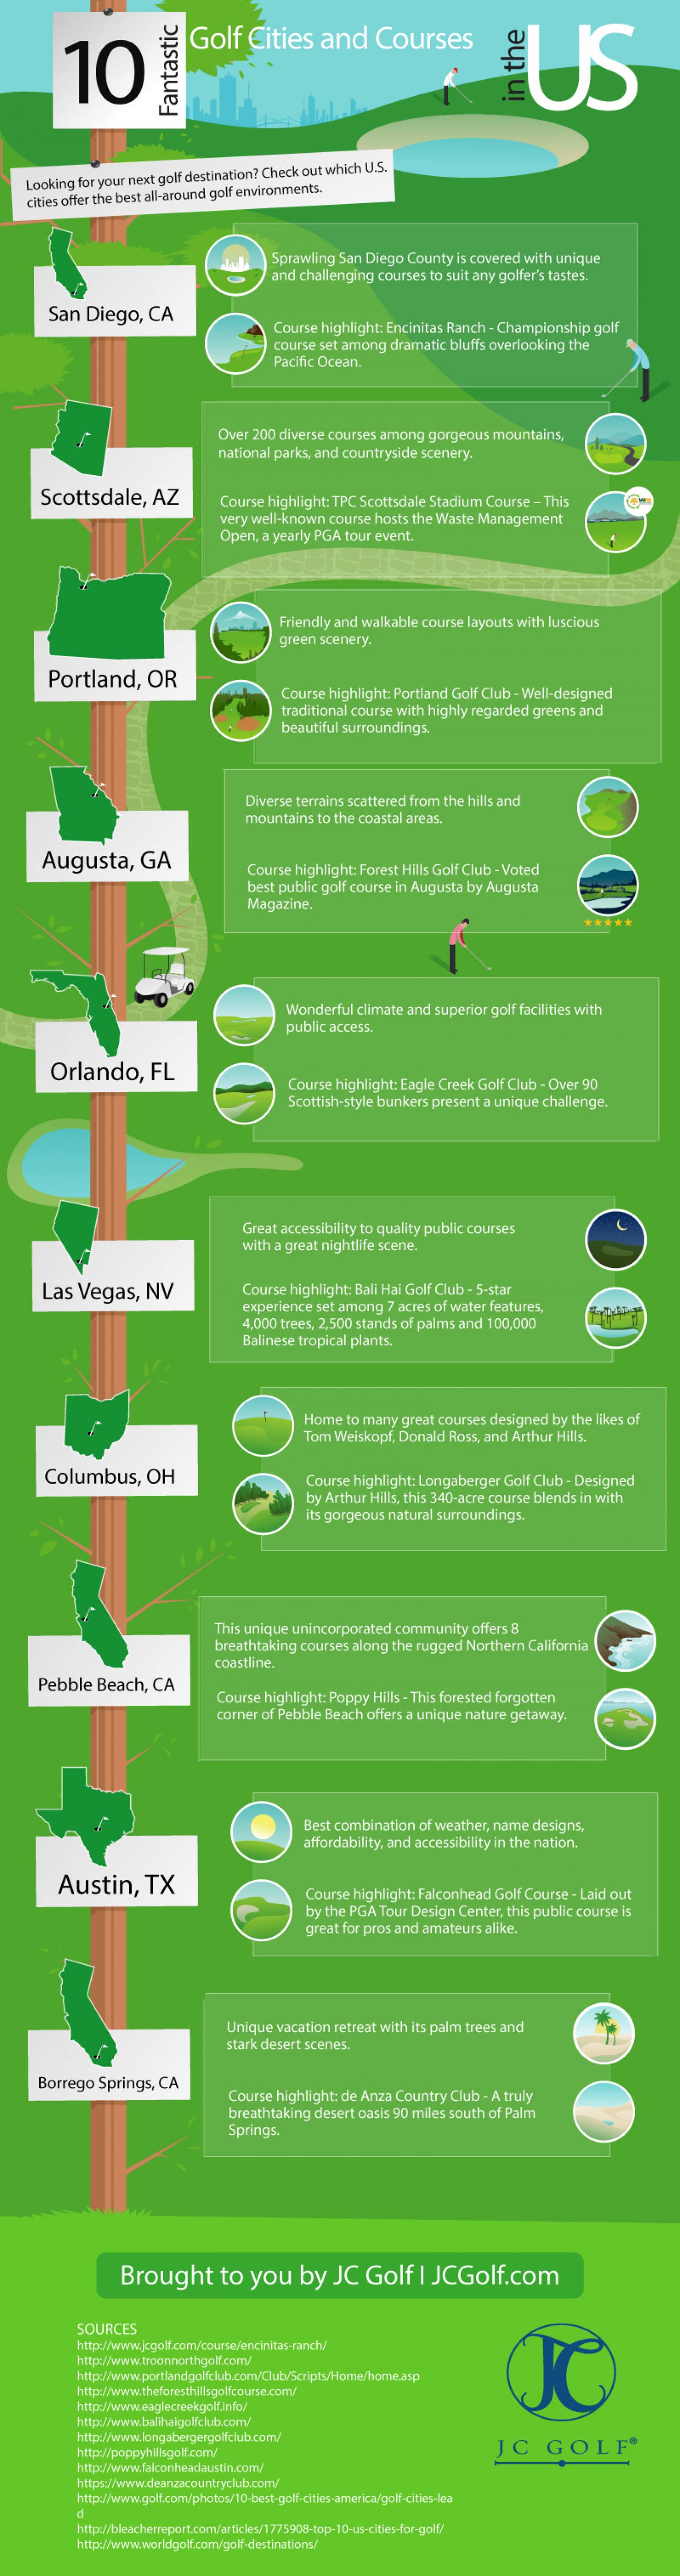 10 Fantastic Golf Cities and Courses in the U.S. Infographic